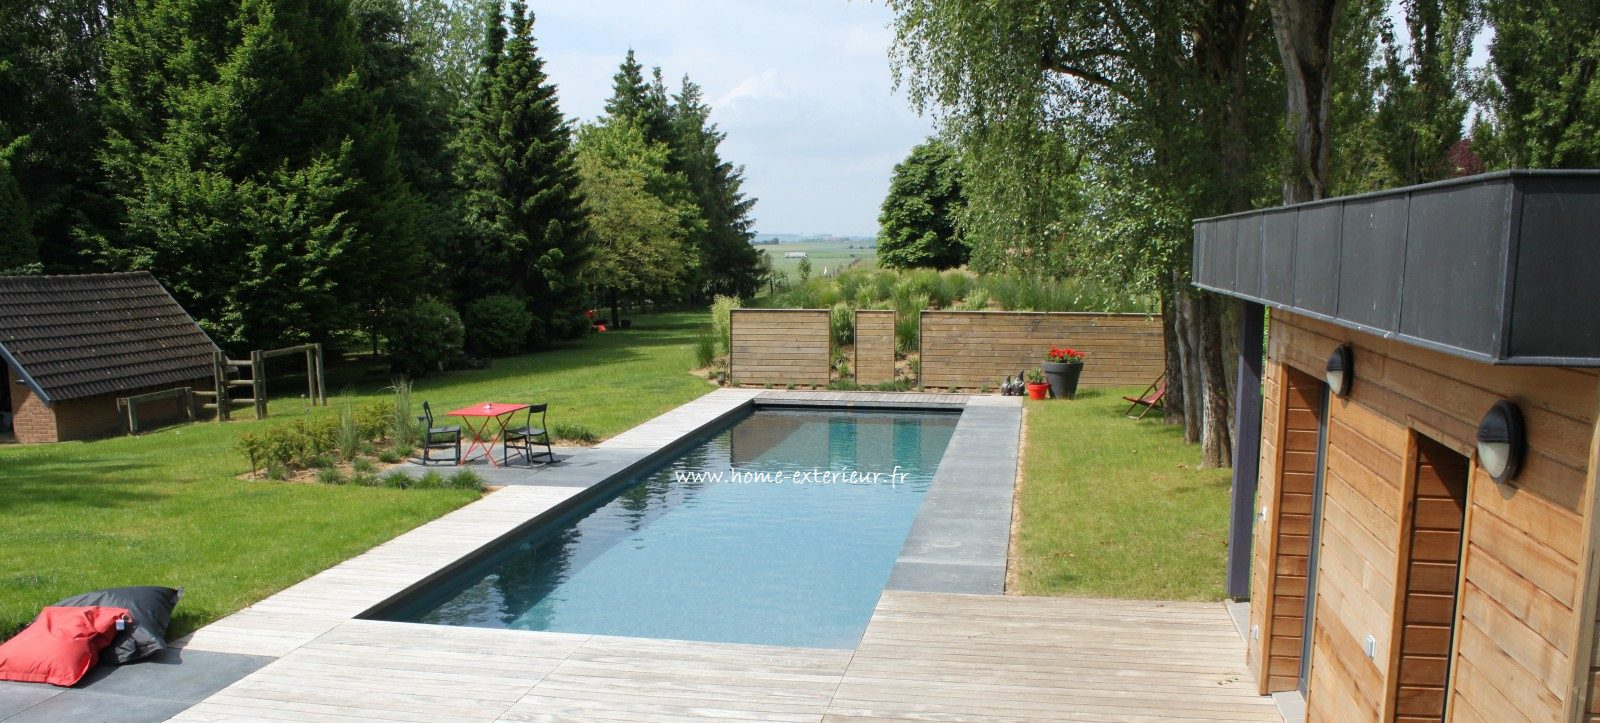 Architecte paysagiste terrasses jardins nord lille home ext rieur - Amenagement exterieur piscine ...